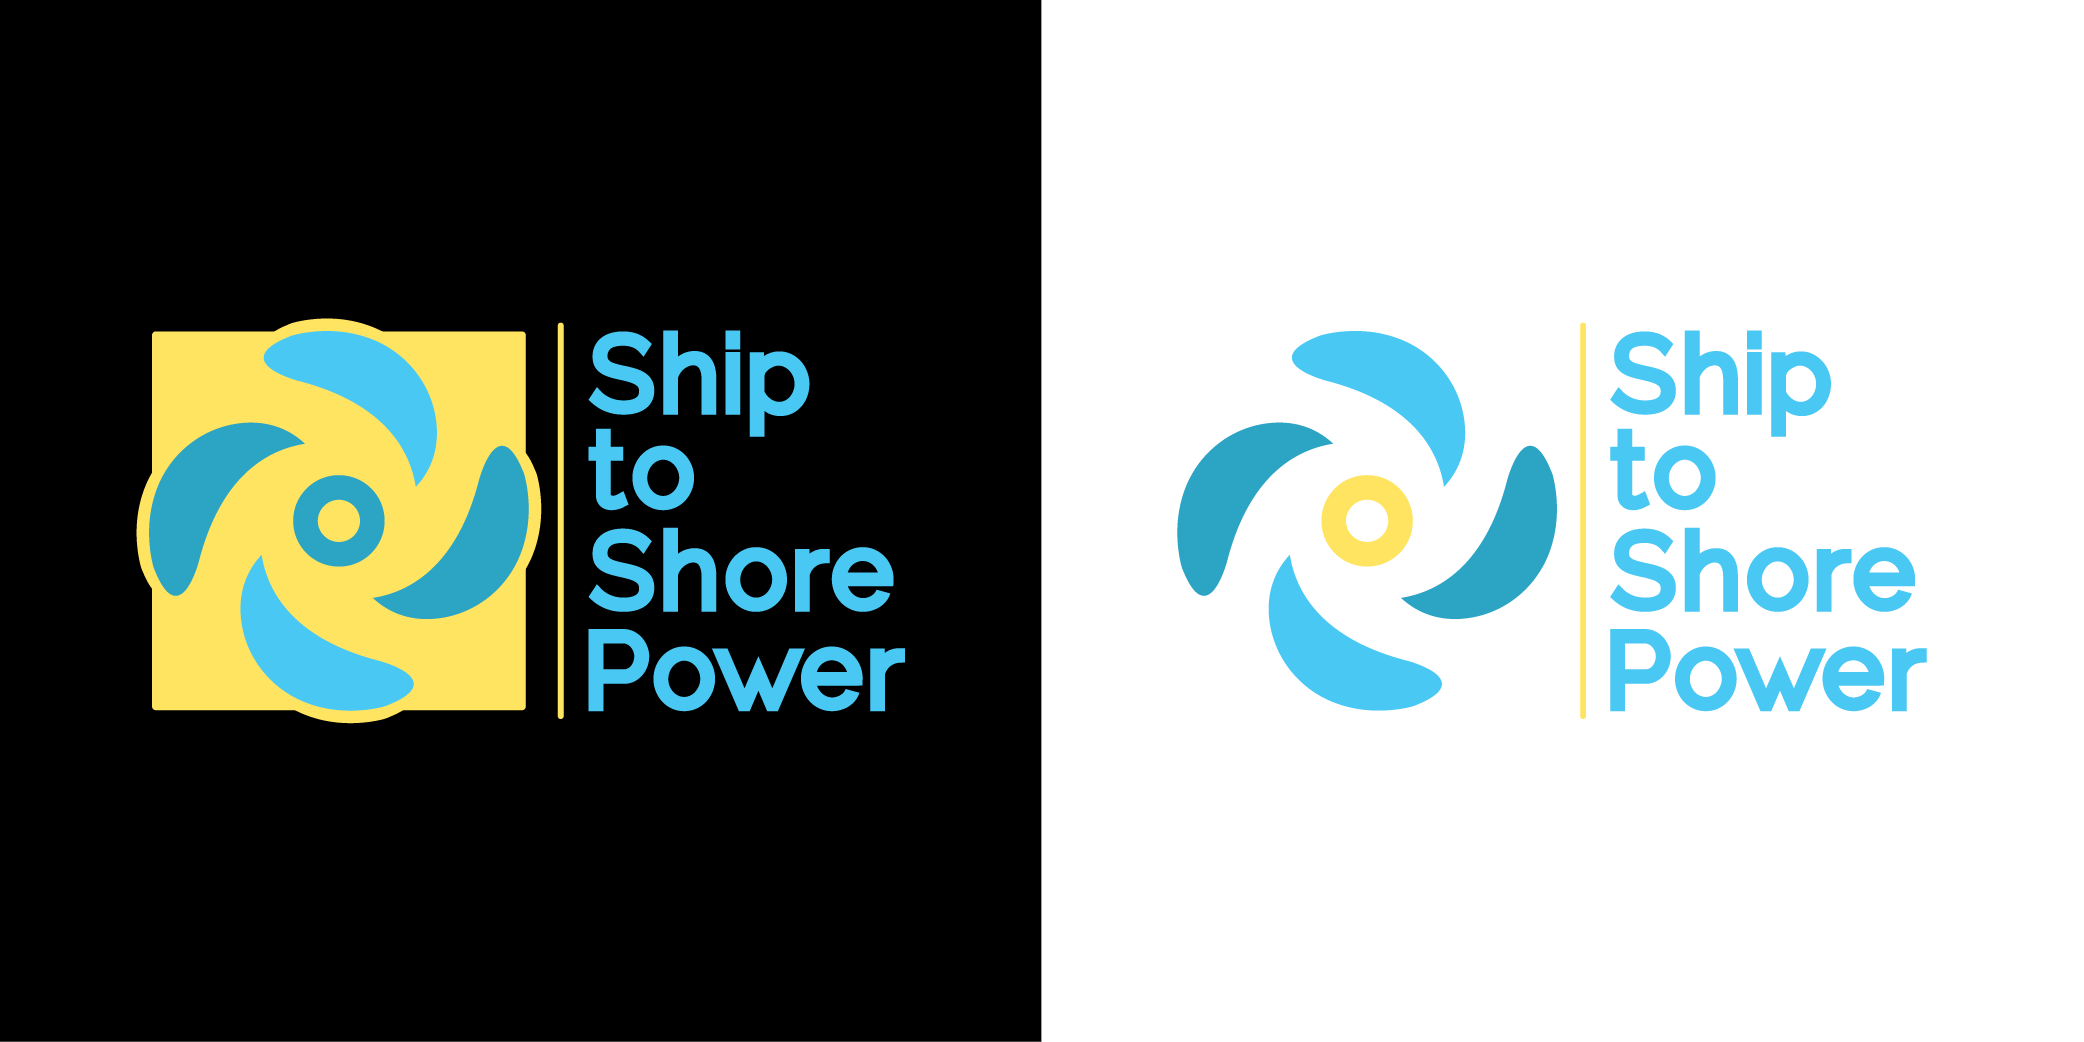 Conept Logos - Ship to Shore Power